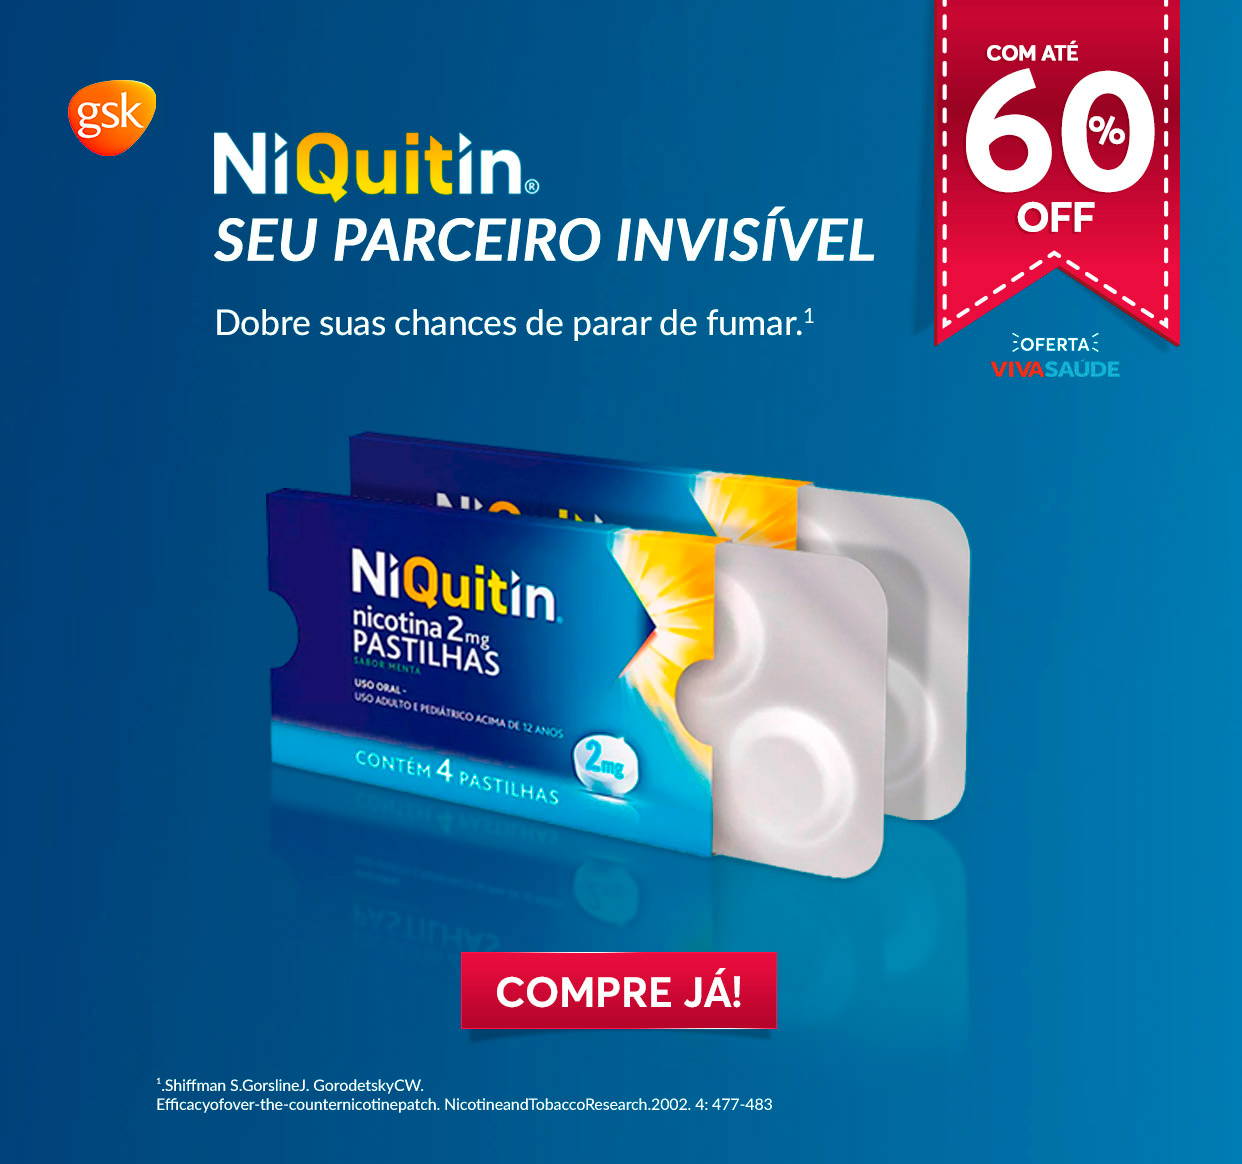 MOBILE GSK Niquitin